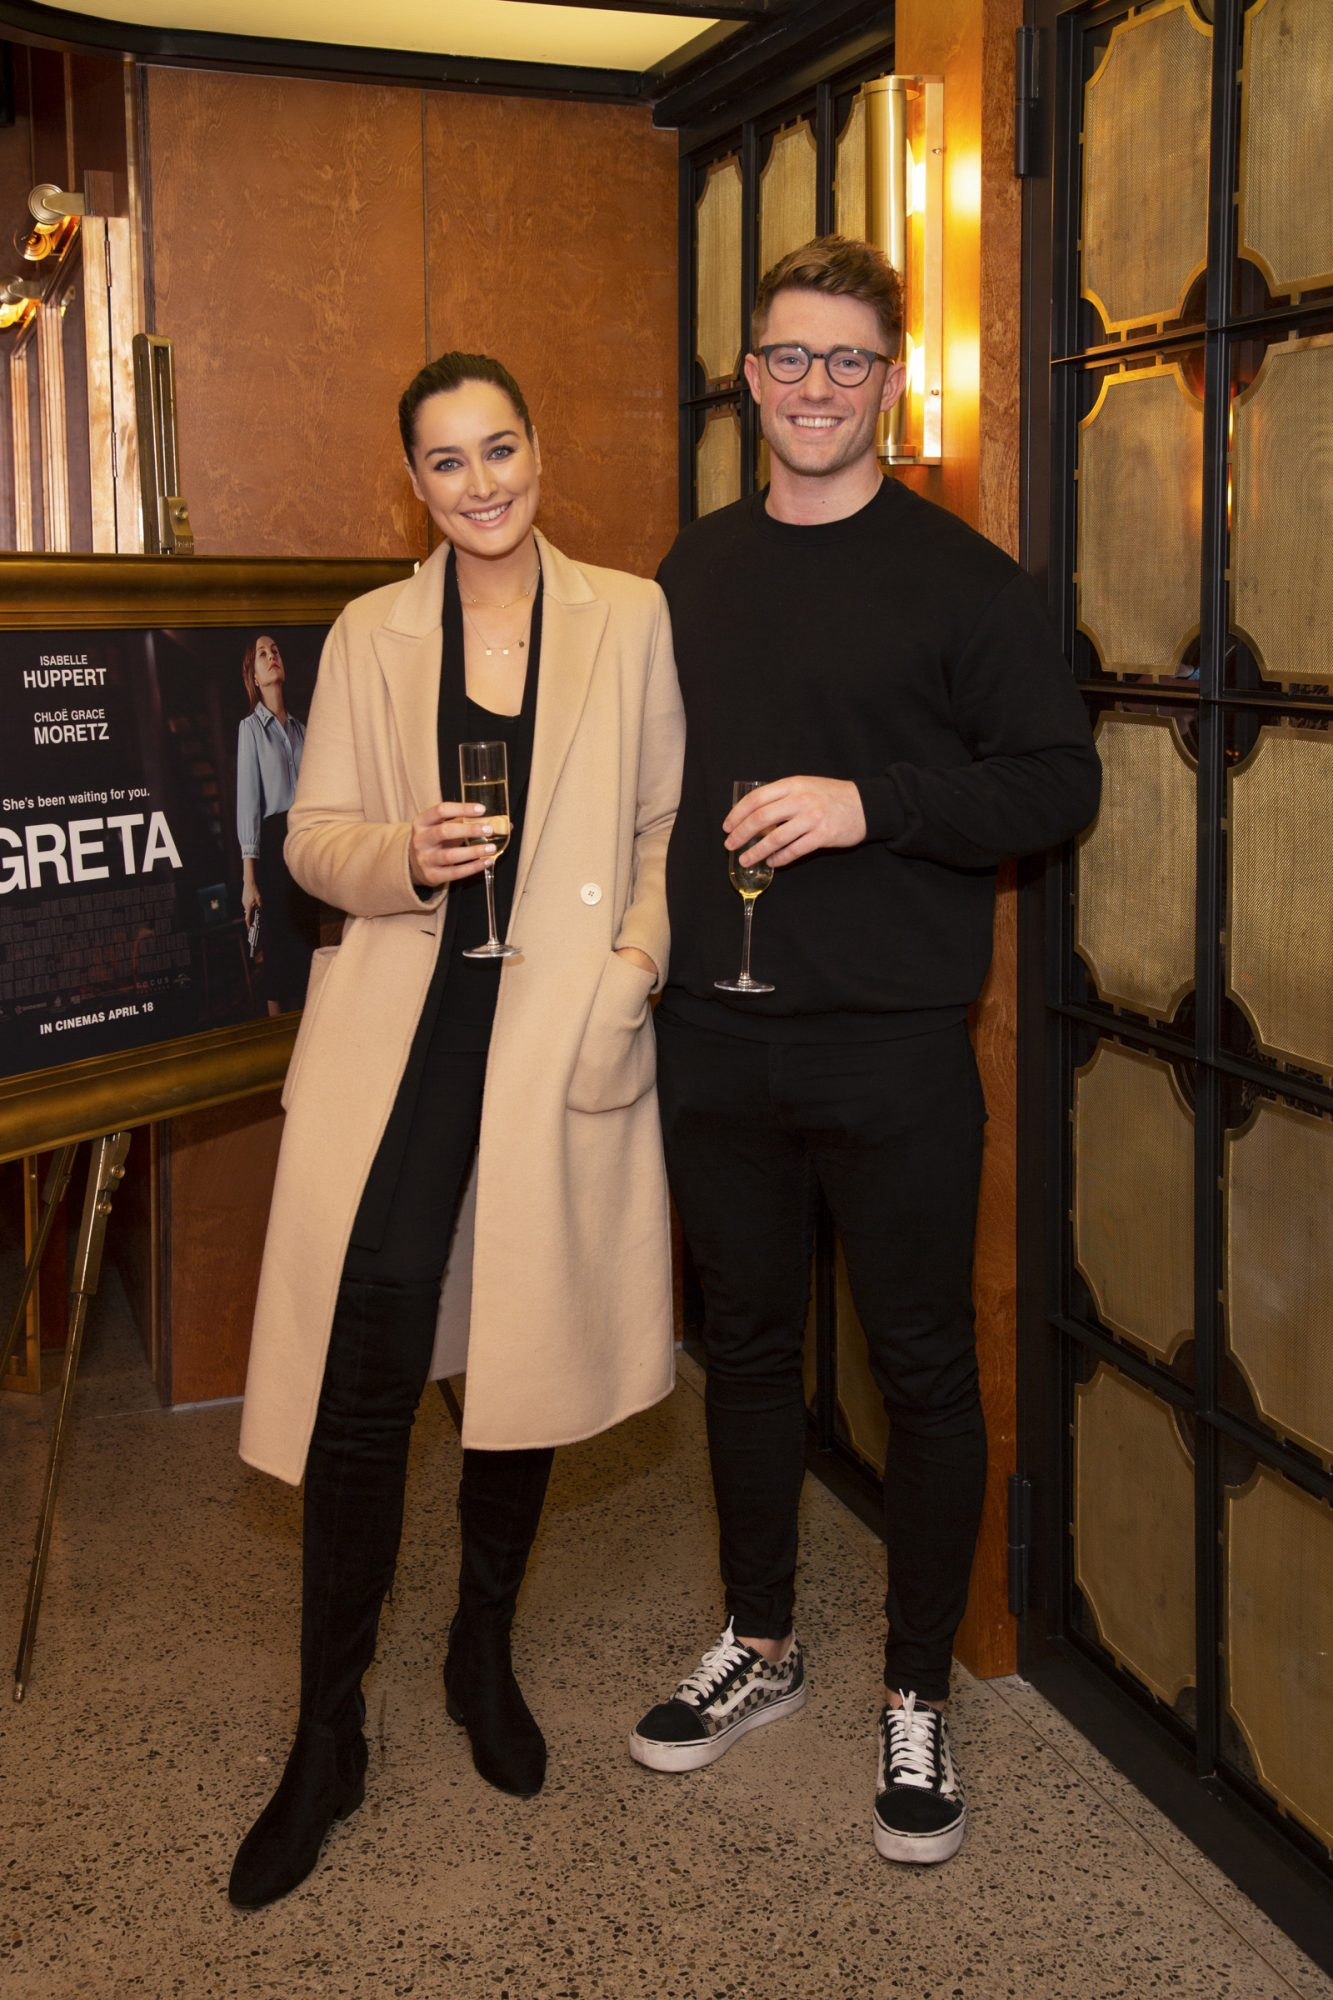 Rachel Purcell & Kevin McKeigue pictured at a special preview screening of GRETA at The Stella Theatre, Ranelagh. GRETA, directed by Academy Award®-winner Neil Jordan and starring Chloë Grace Moretz and Isabelle Huppert, hits cinemas across Ireland this Thursday 18th April. Photo: Anthony Woods